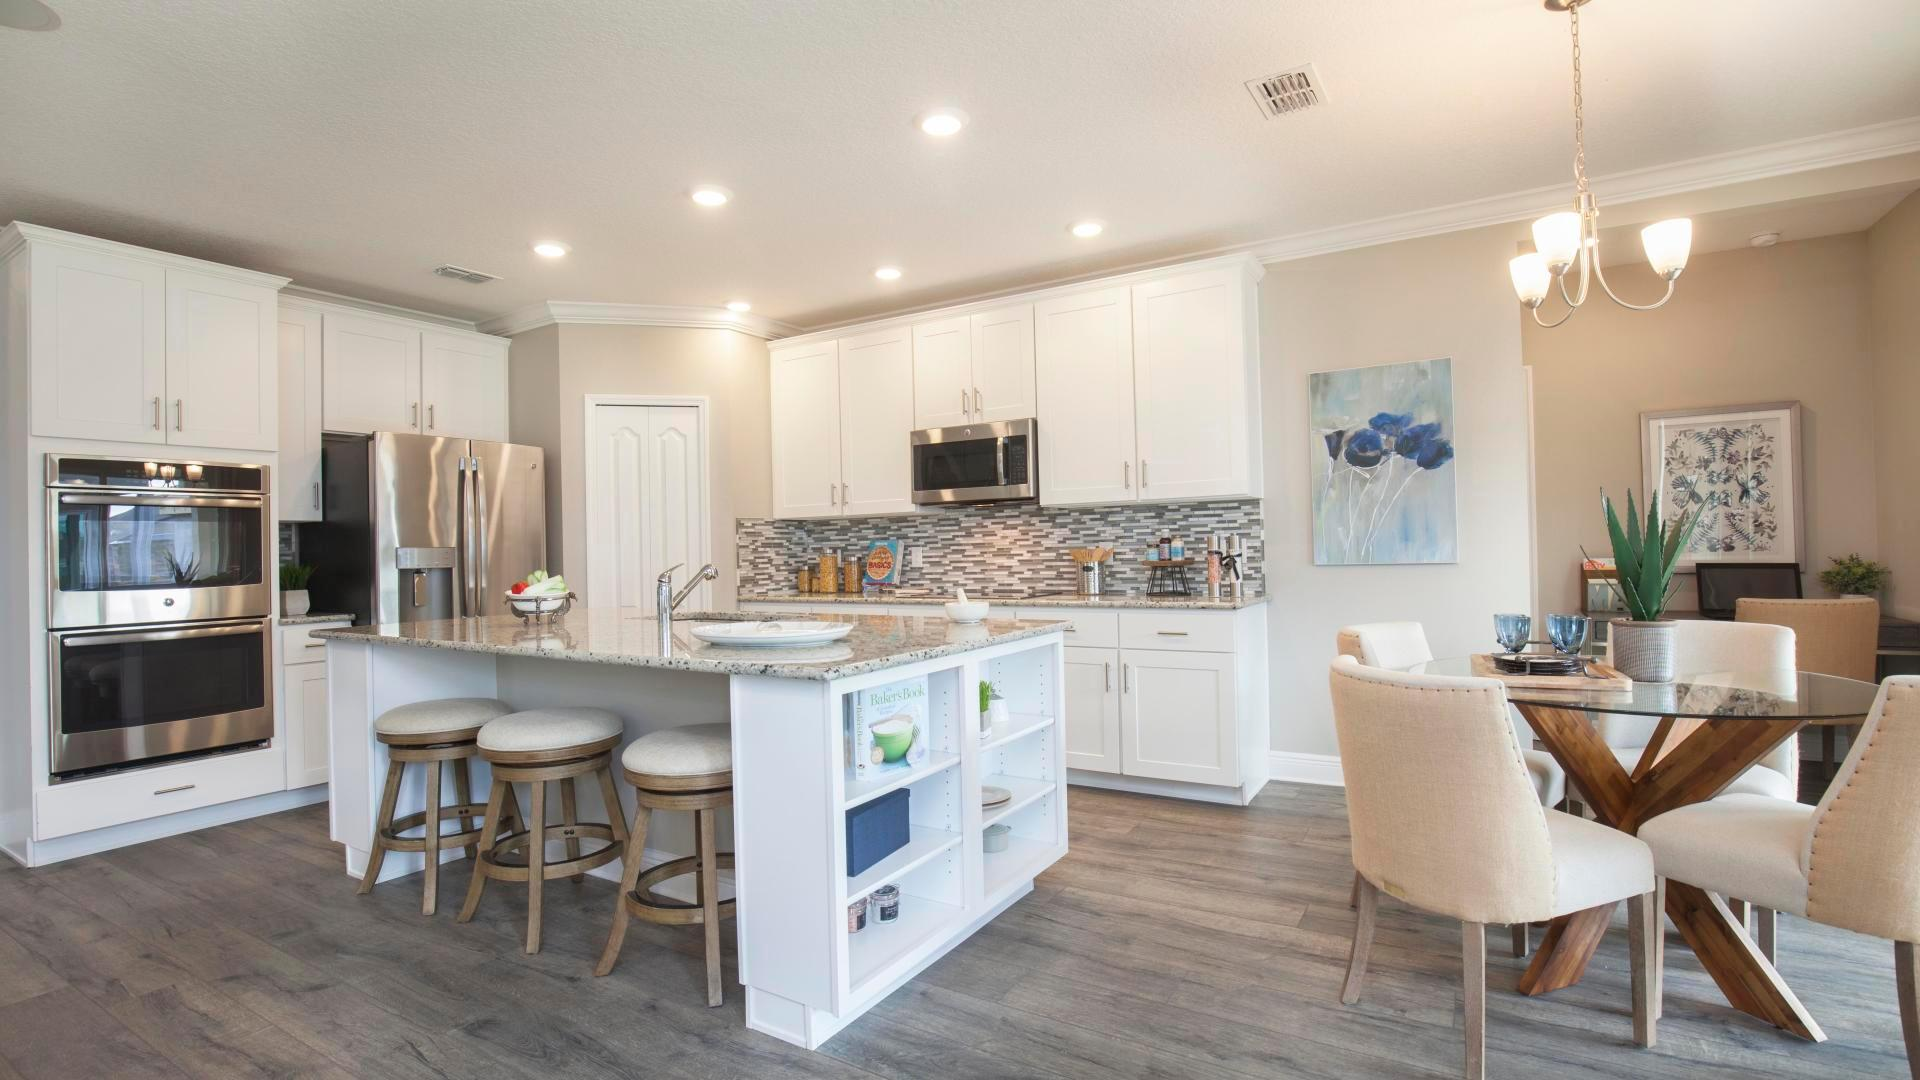 Kitchen featured in the Carlisle By Maronda Homes in Tampa-St. Petersburg, FL